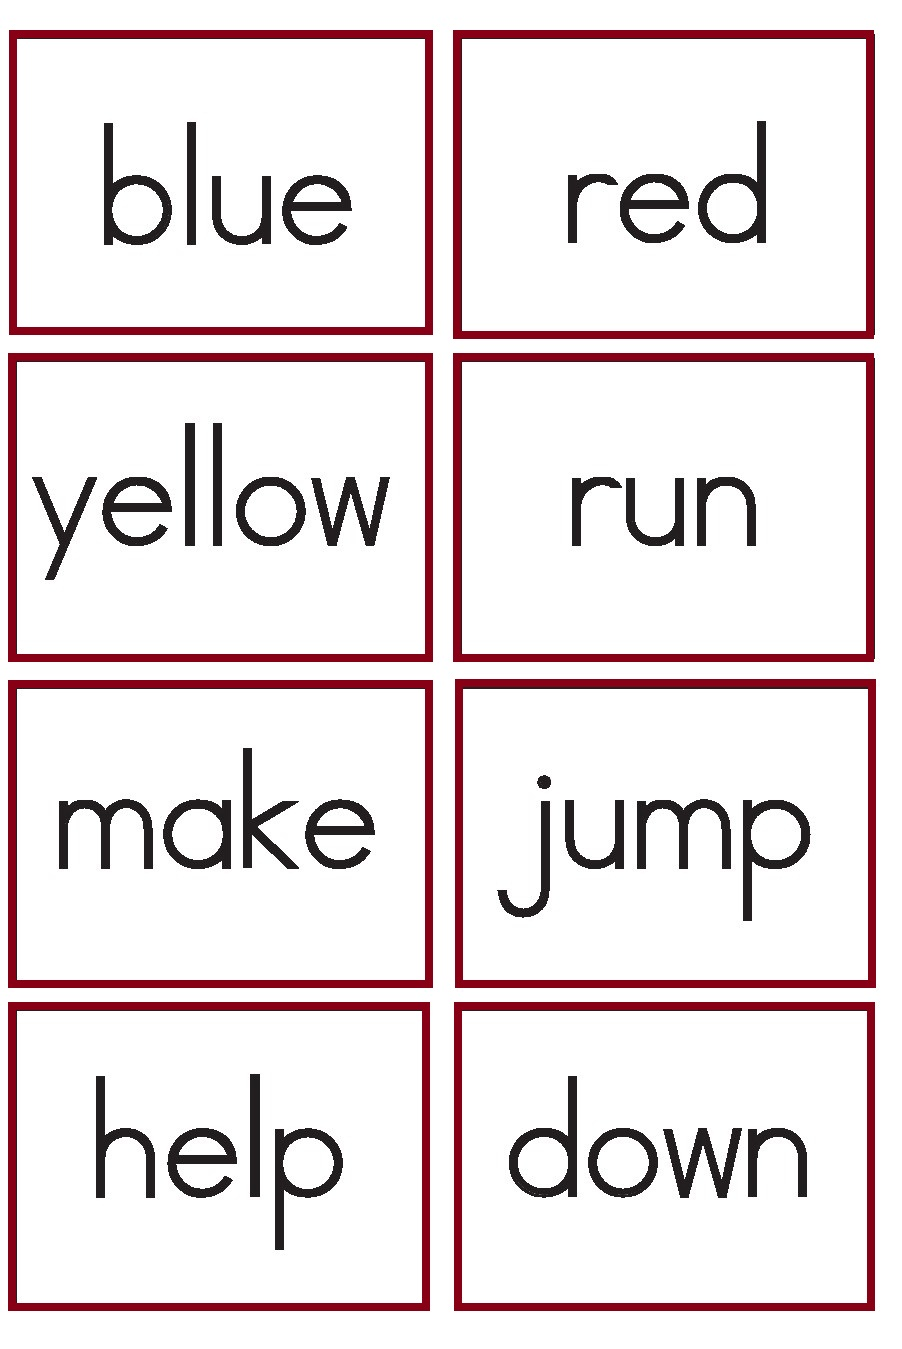 kindergarten worksheets  kindergarten sight words flash cards